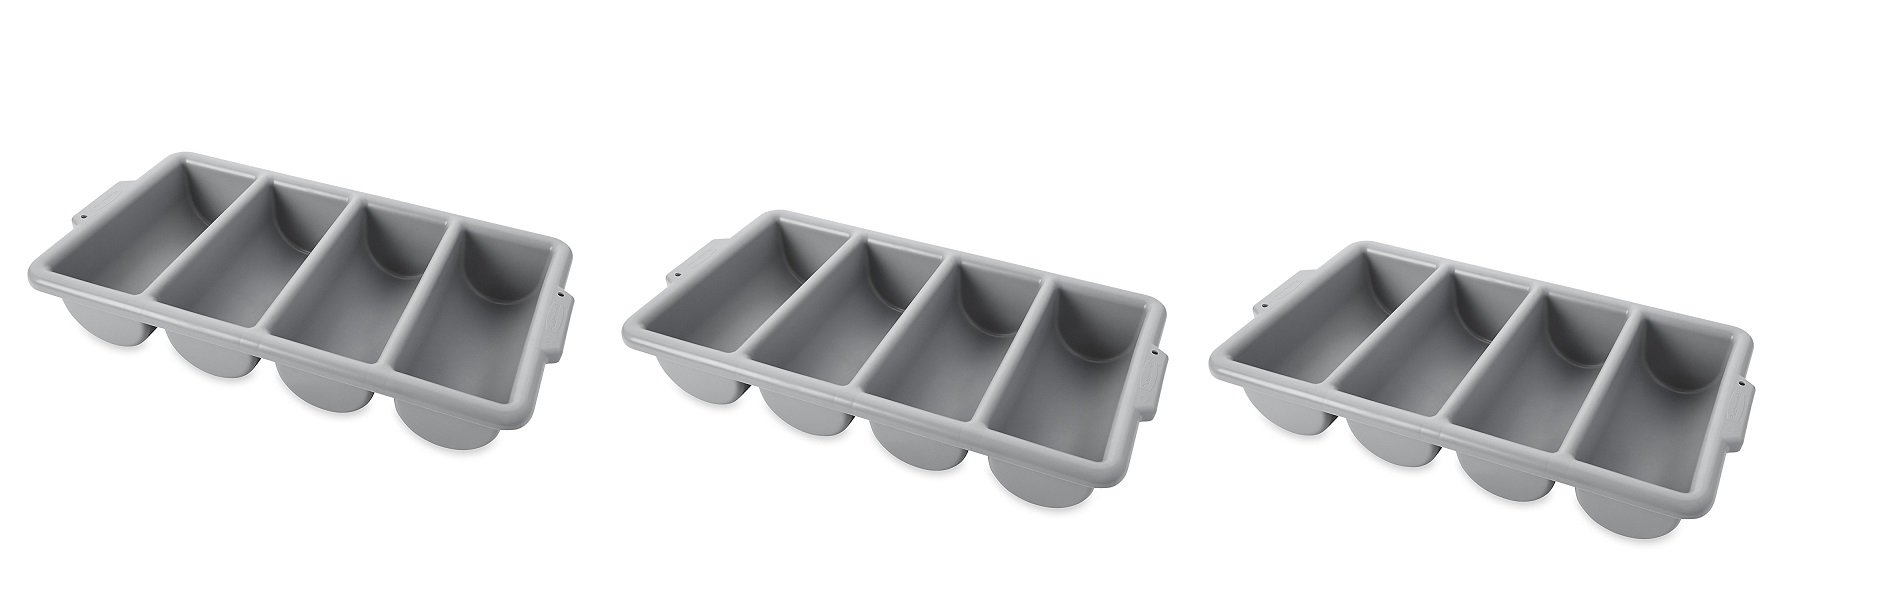 Rubbermaid Commercial FG336200GRAY 4-Compartment Cutlery Bin, Gray (3 PACK,) by Rubbermaid Commercial Products